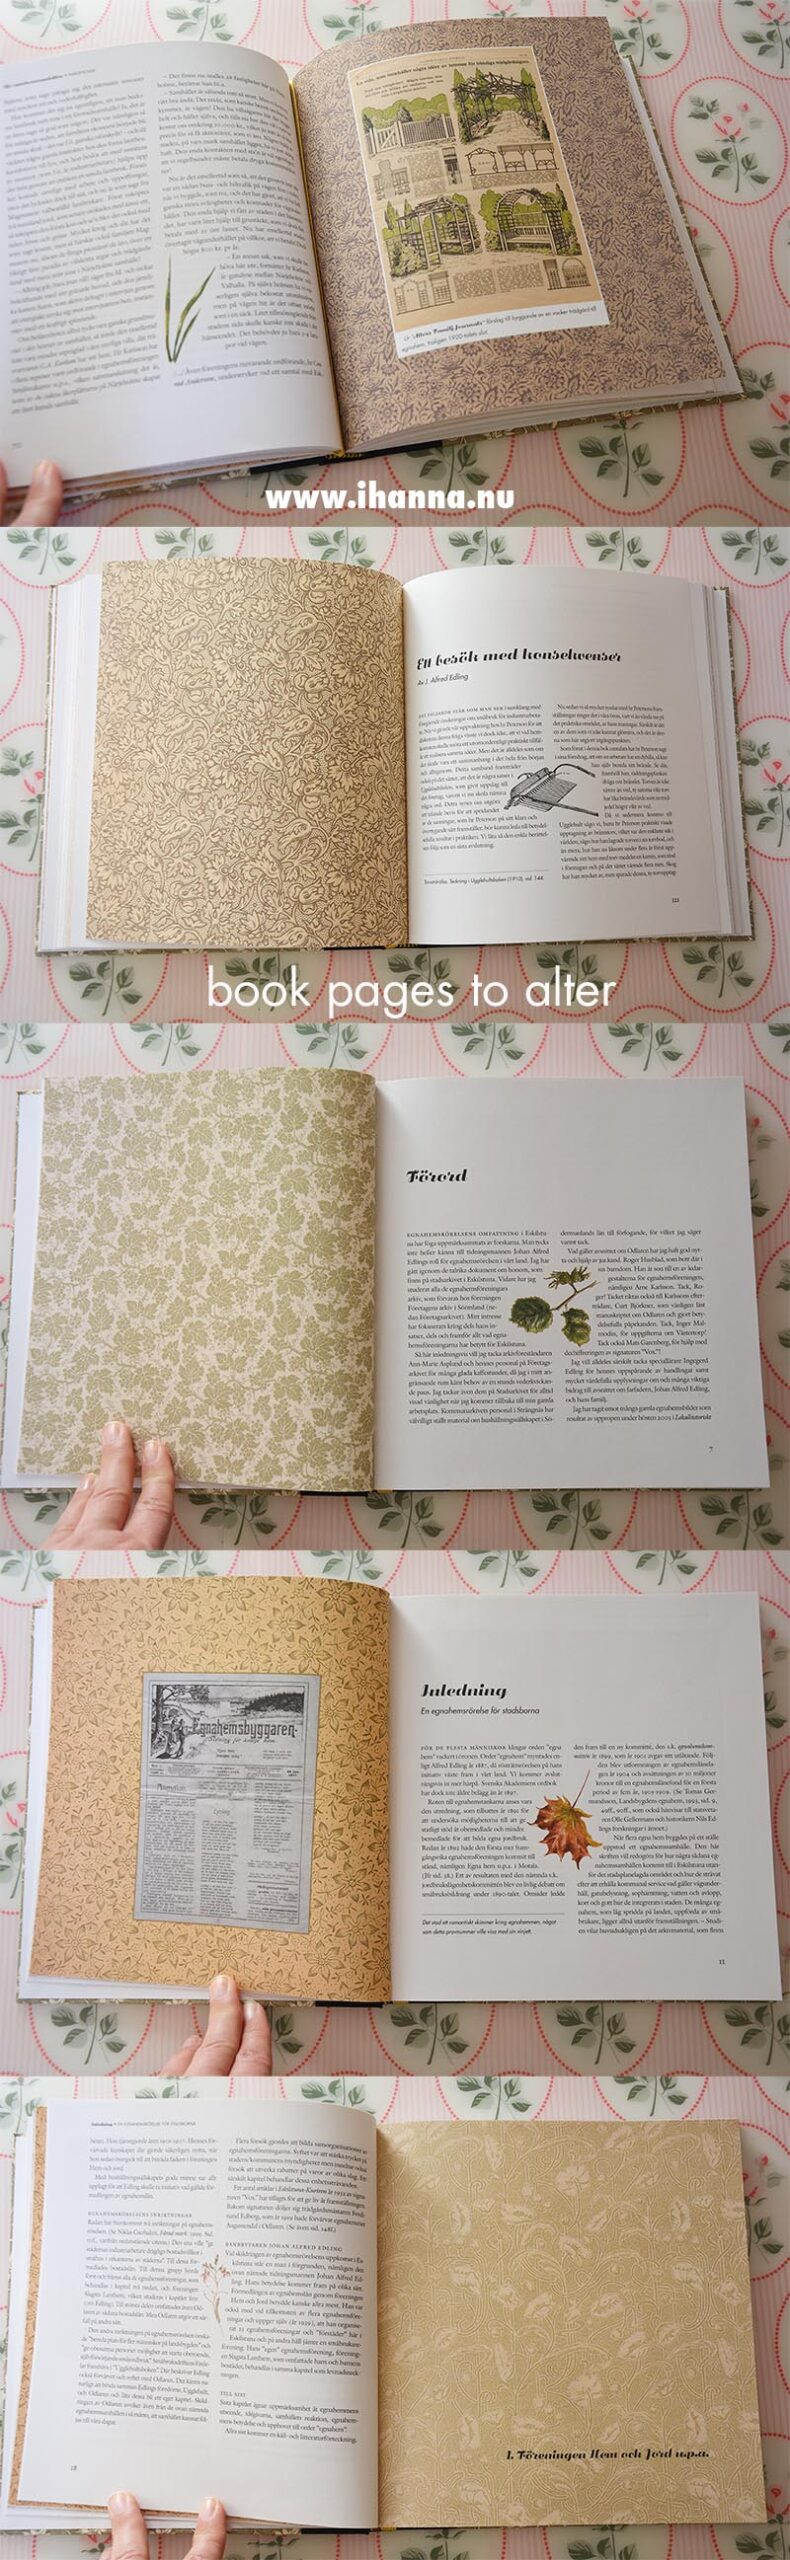 Book pages to alter or tear out from this soon to be Art Journal with yummy end paper pages inside